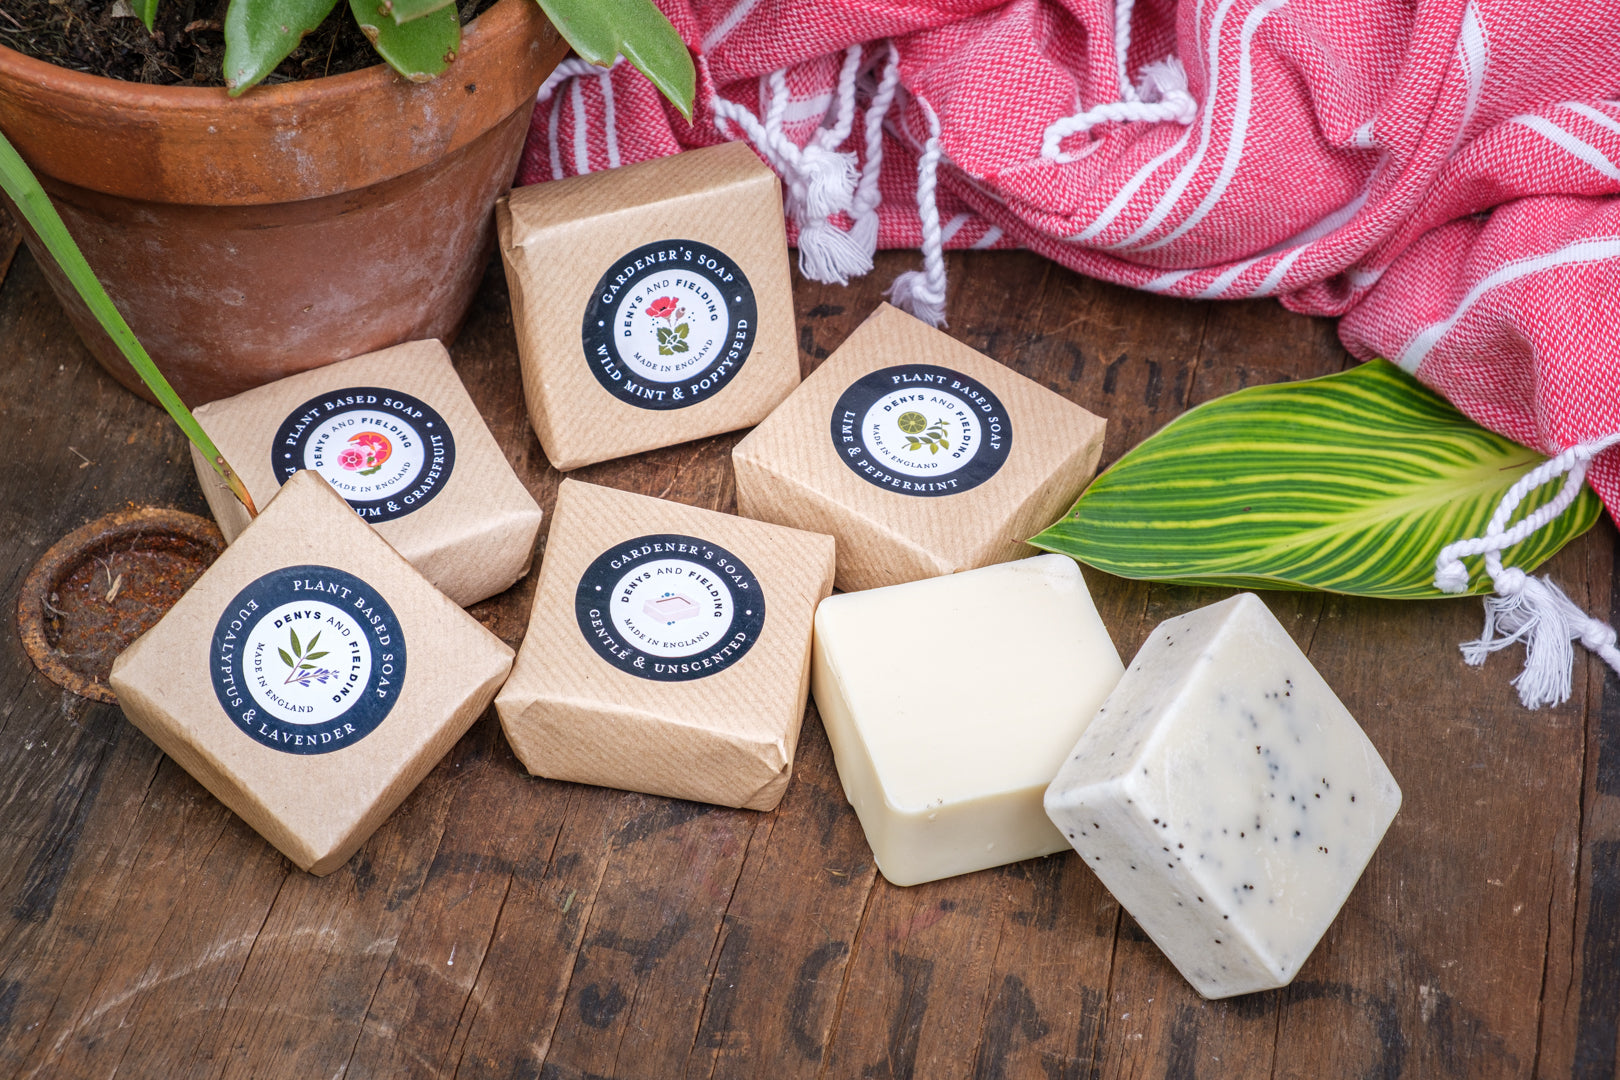 Cold processed soap made in Kent